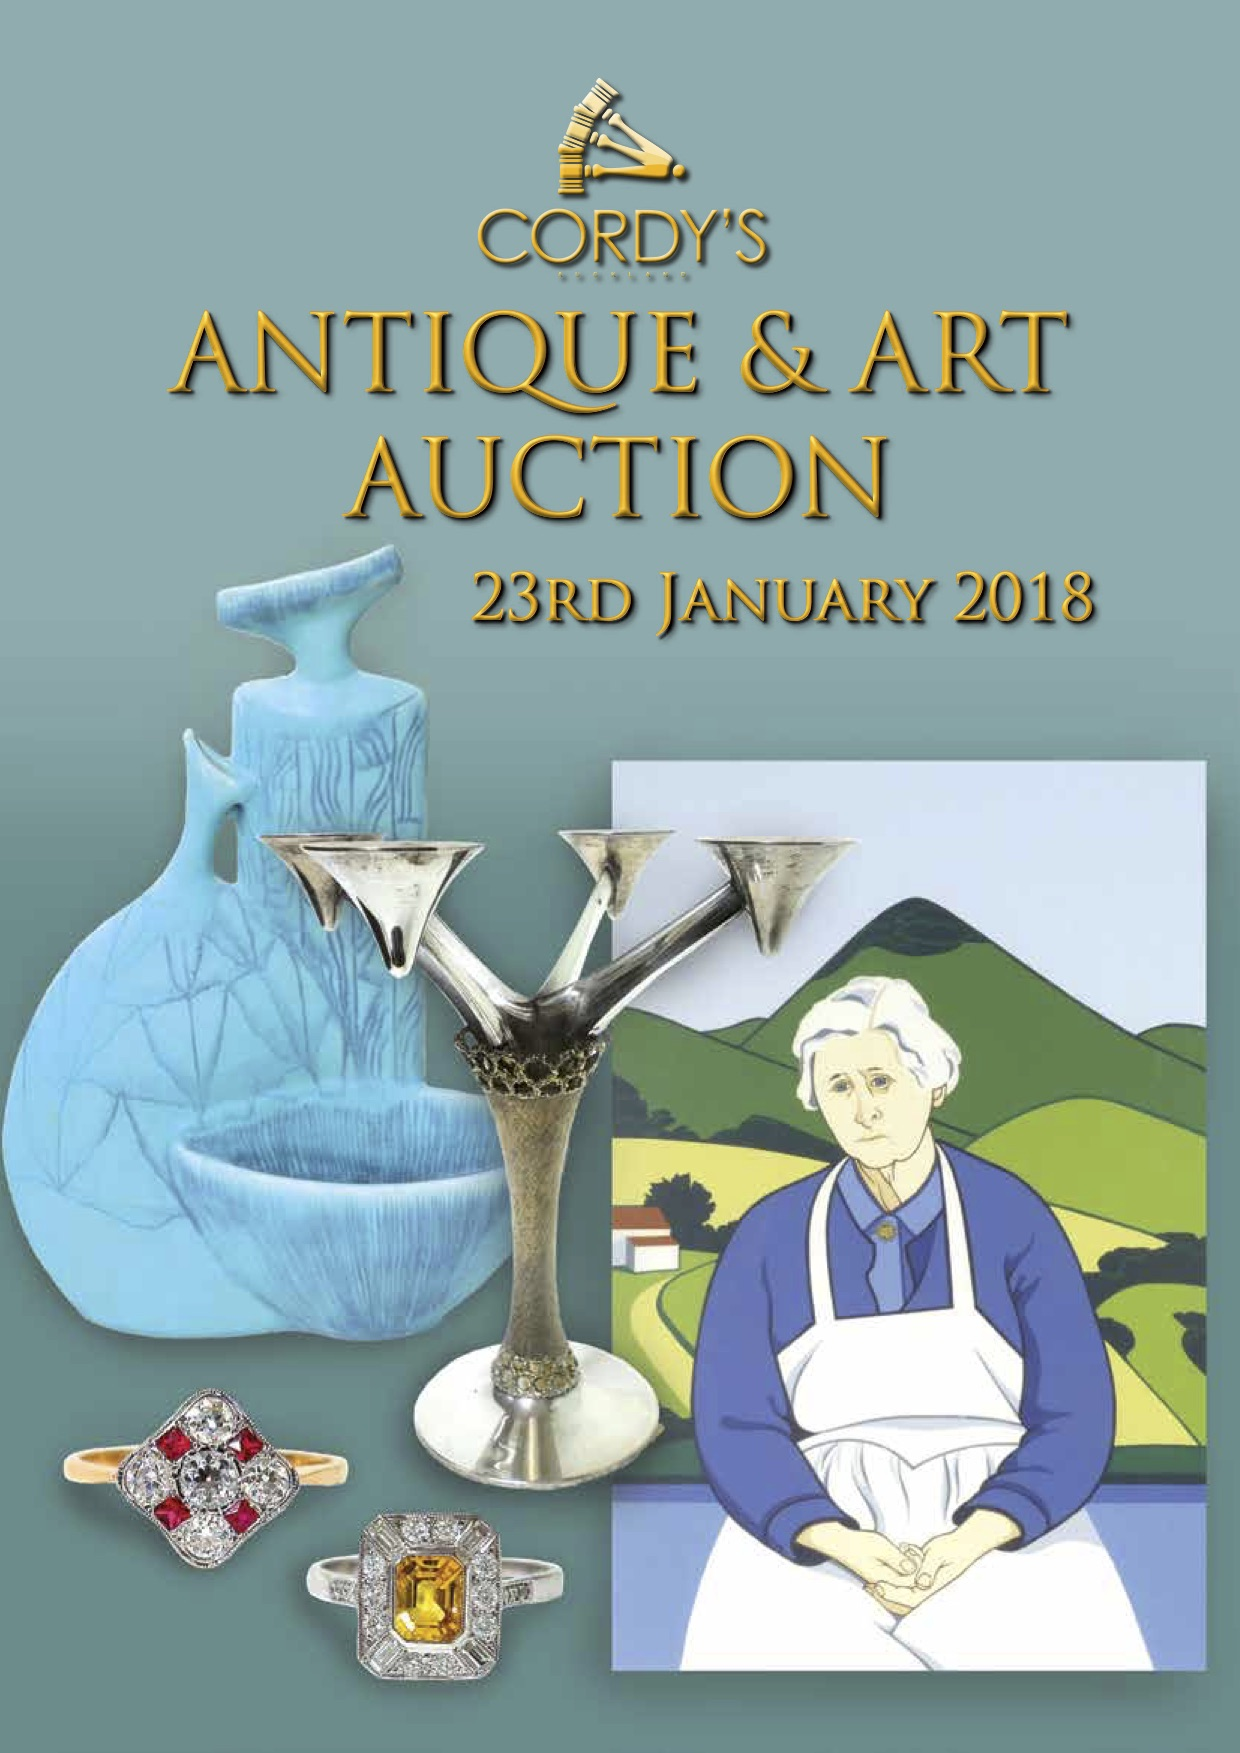 January 2018 Art & Antique Auction - Cordy's | Find Lots Online